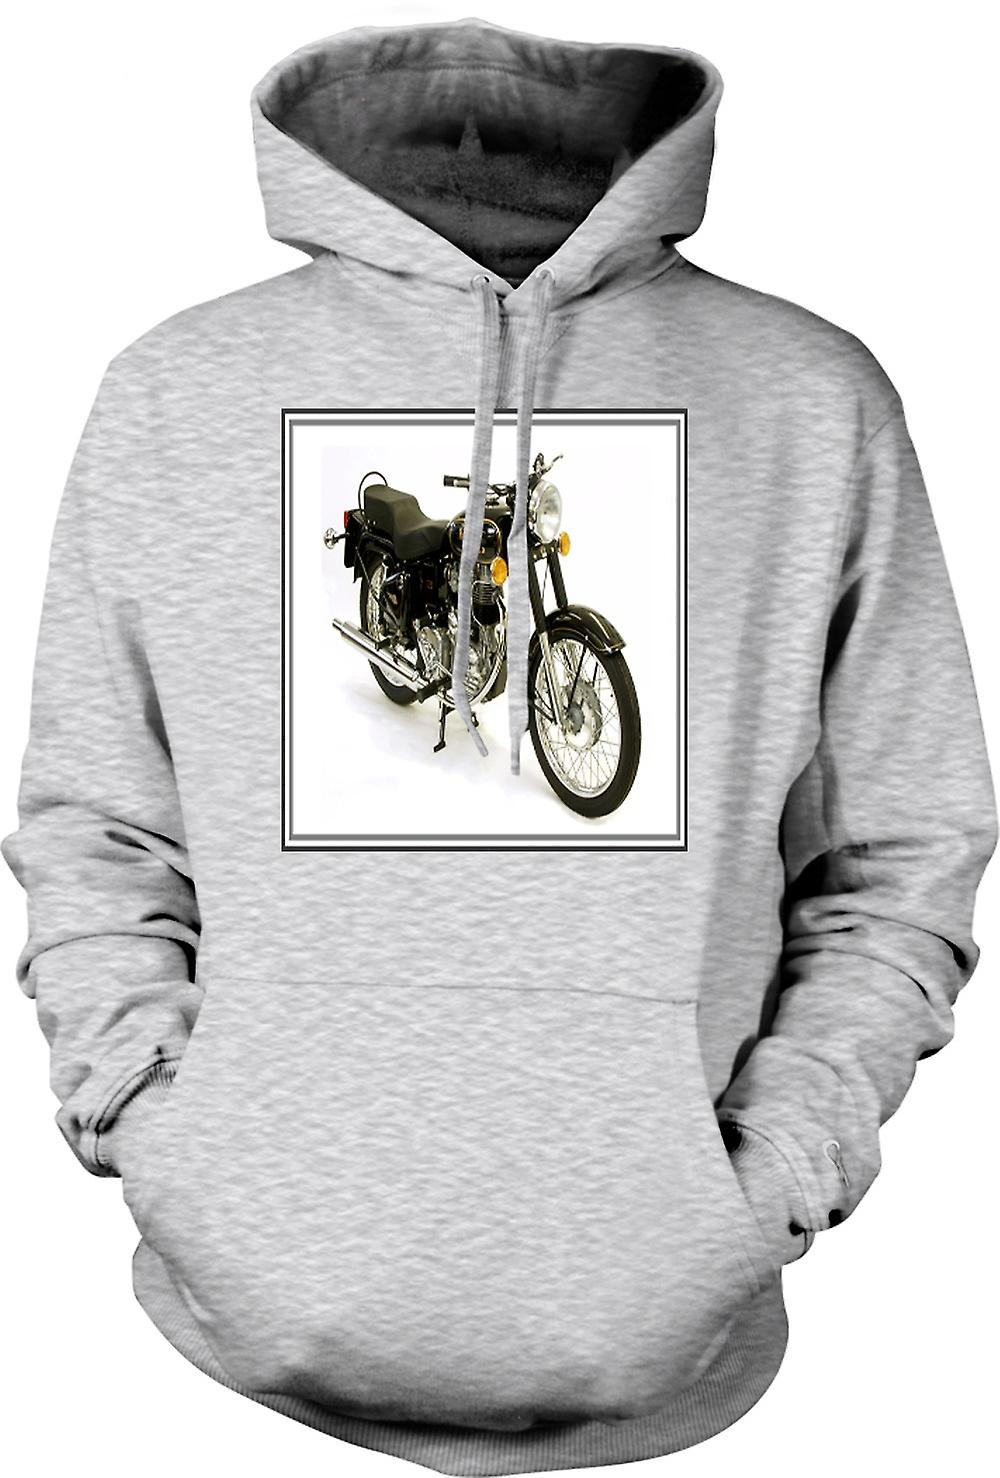 Mens Hoodie - Royal Enfield Bullet - Classic Bike